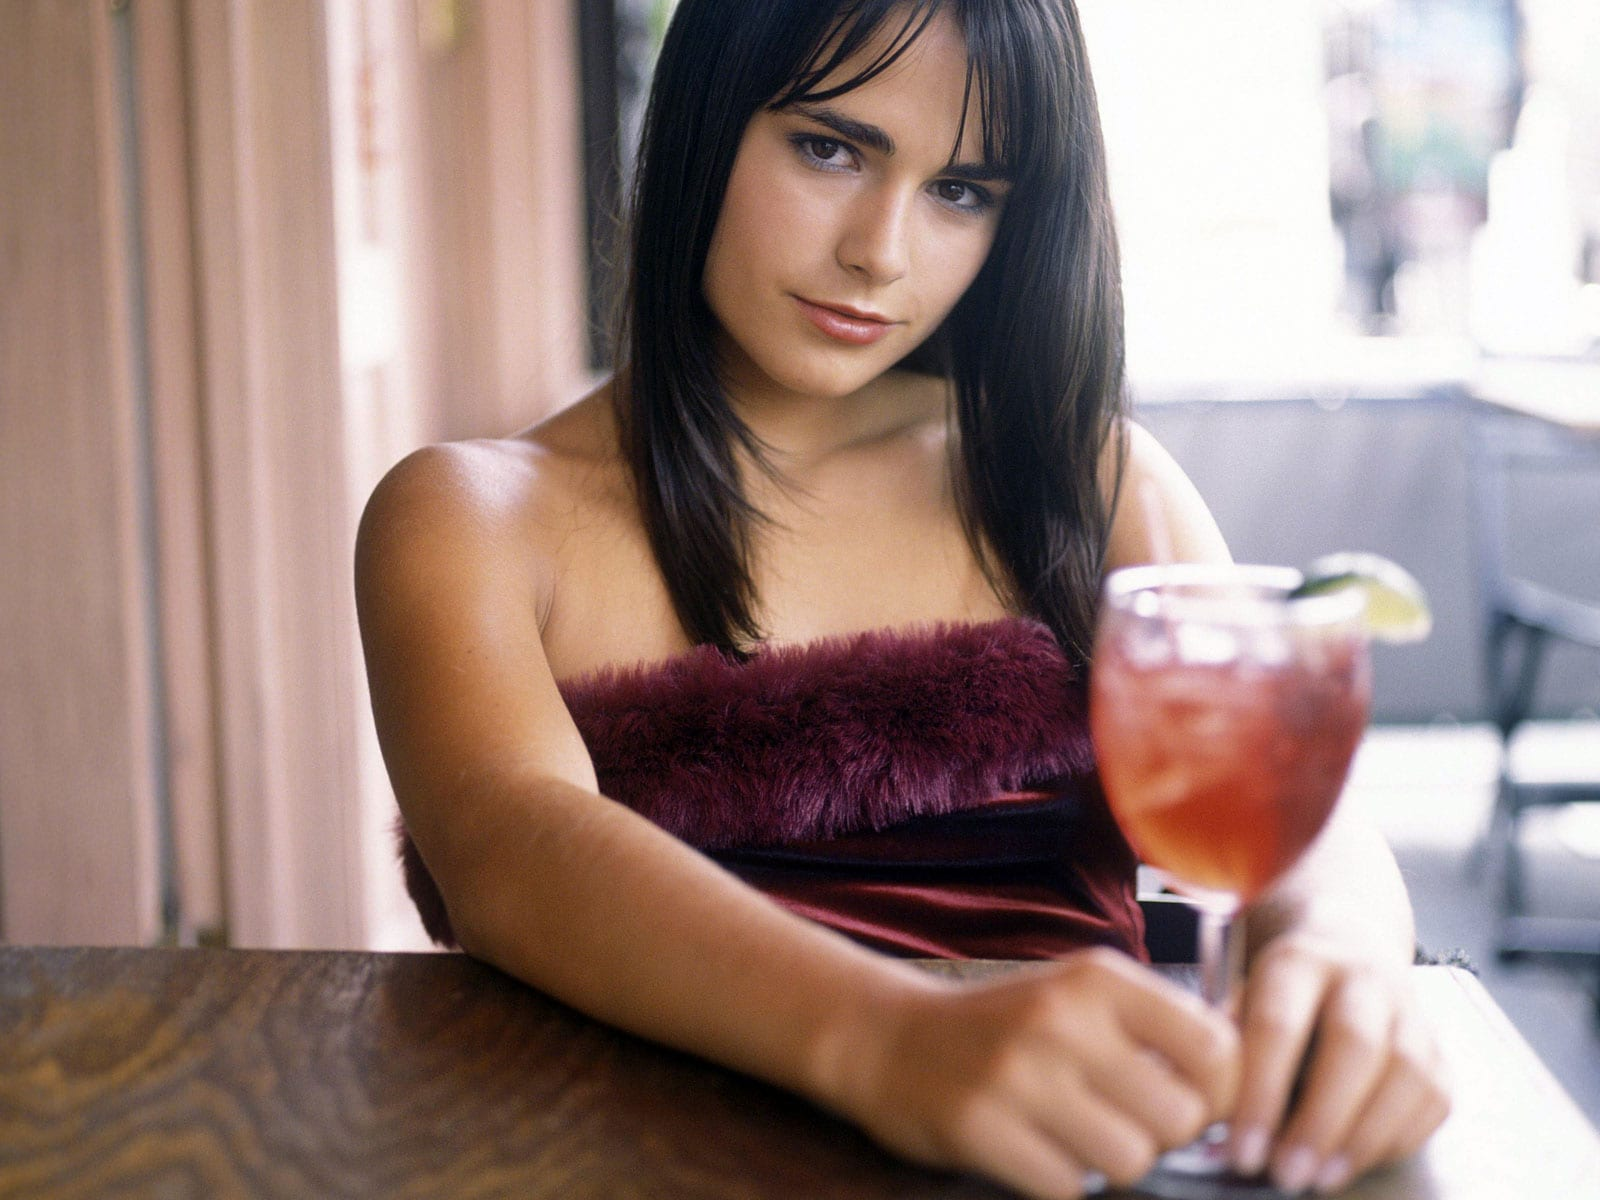 Jordana Brewster Desktop wallpaper